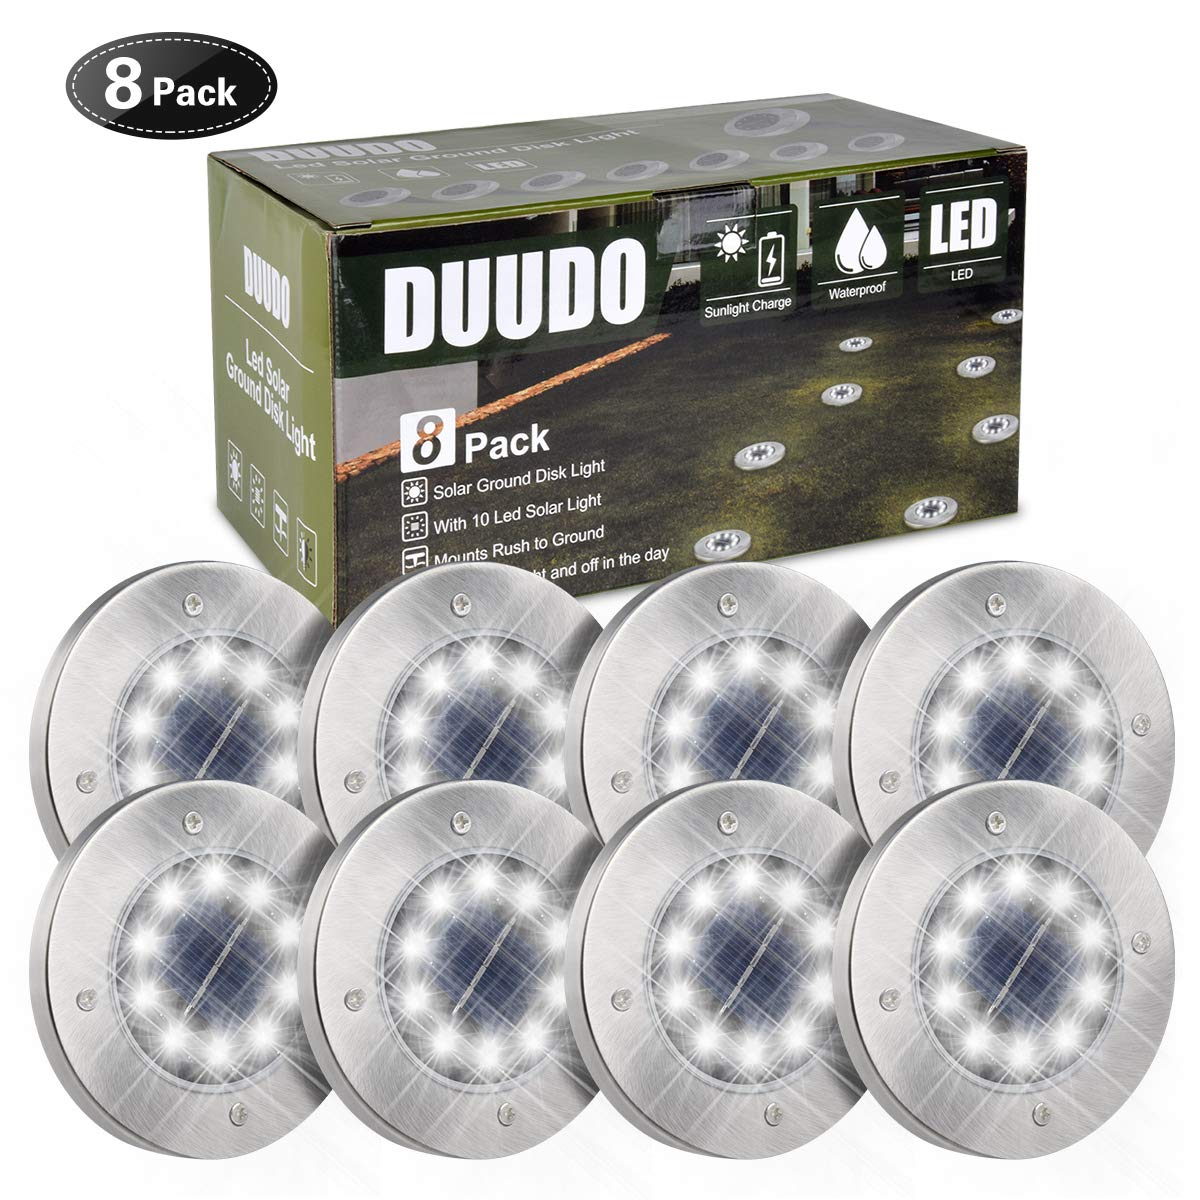 DUUDO Solar Ground Light, Upgraded 10 LED Garden Pathway Outdoor Waterproof in-Ground Lights, Disk Lights (Cold White, 8 Packs) by DUUDO